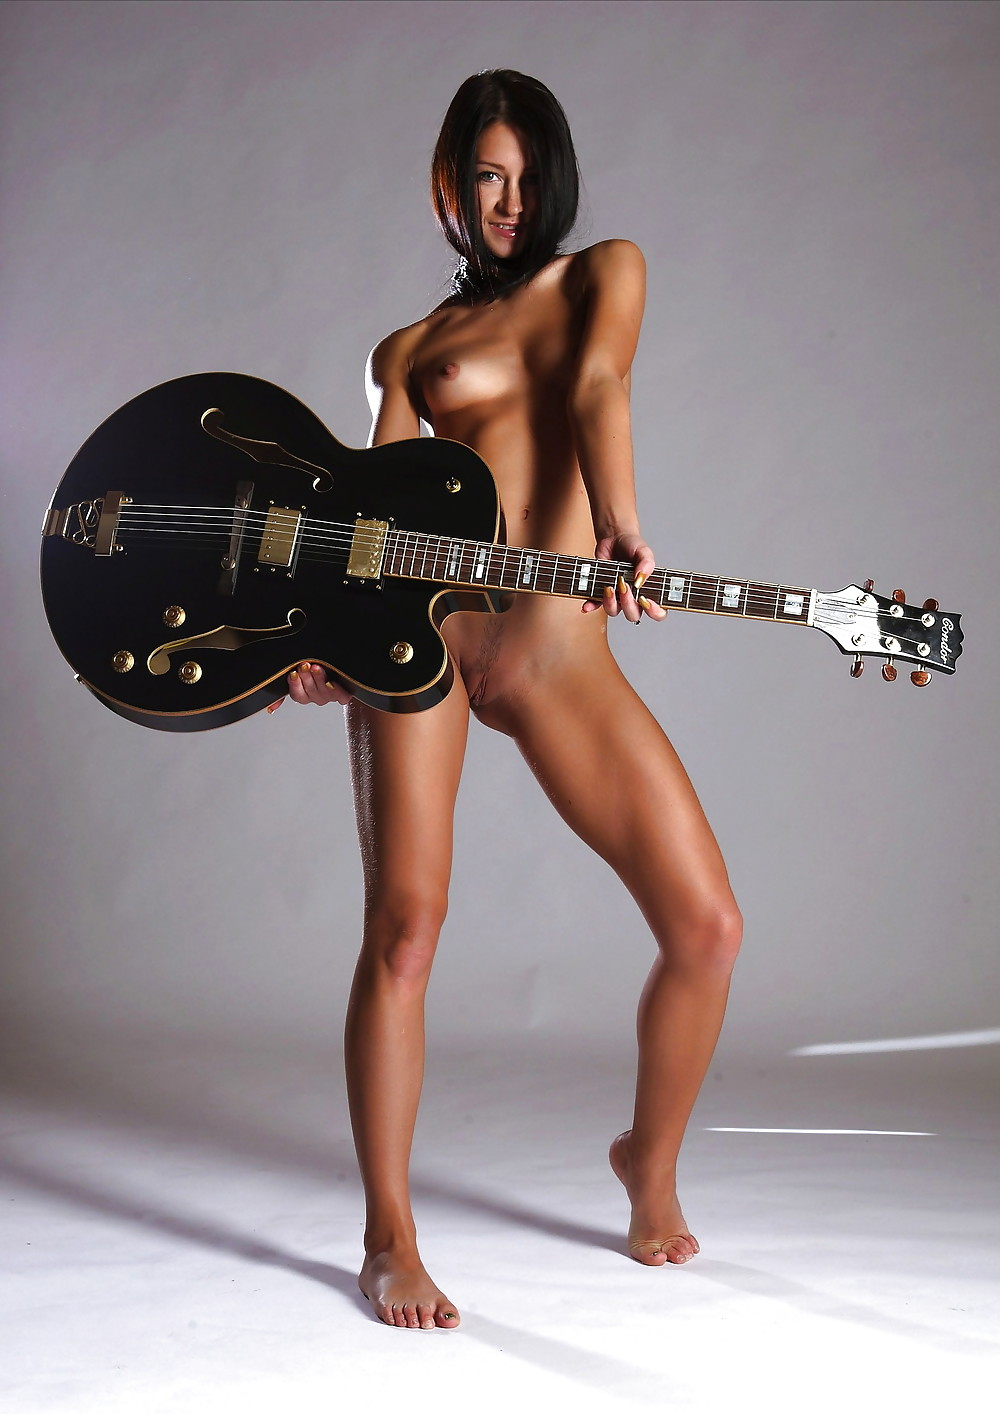 Naked chinese girl guitarist 6